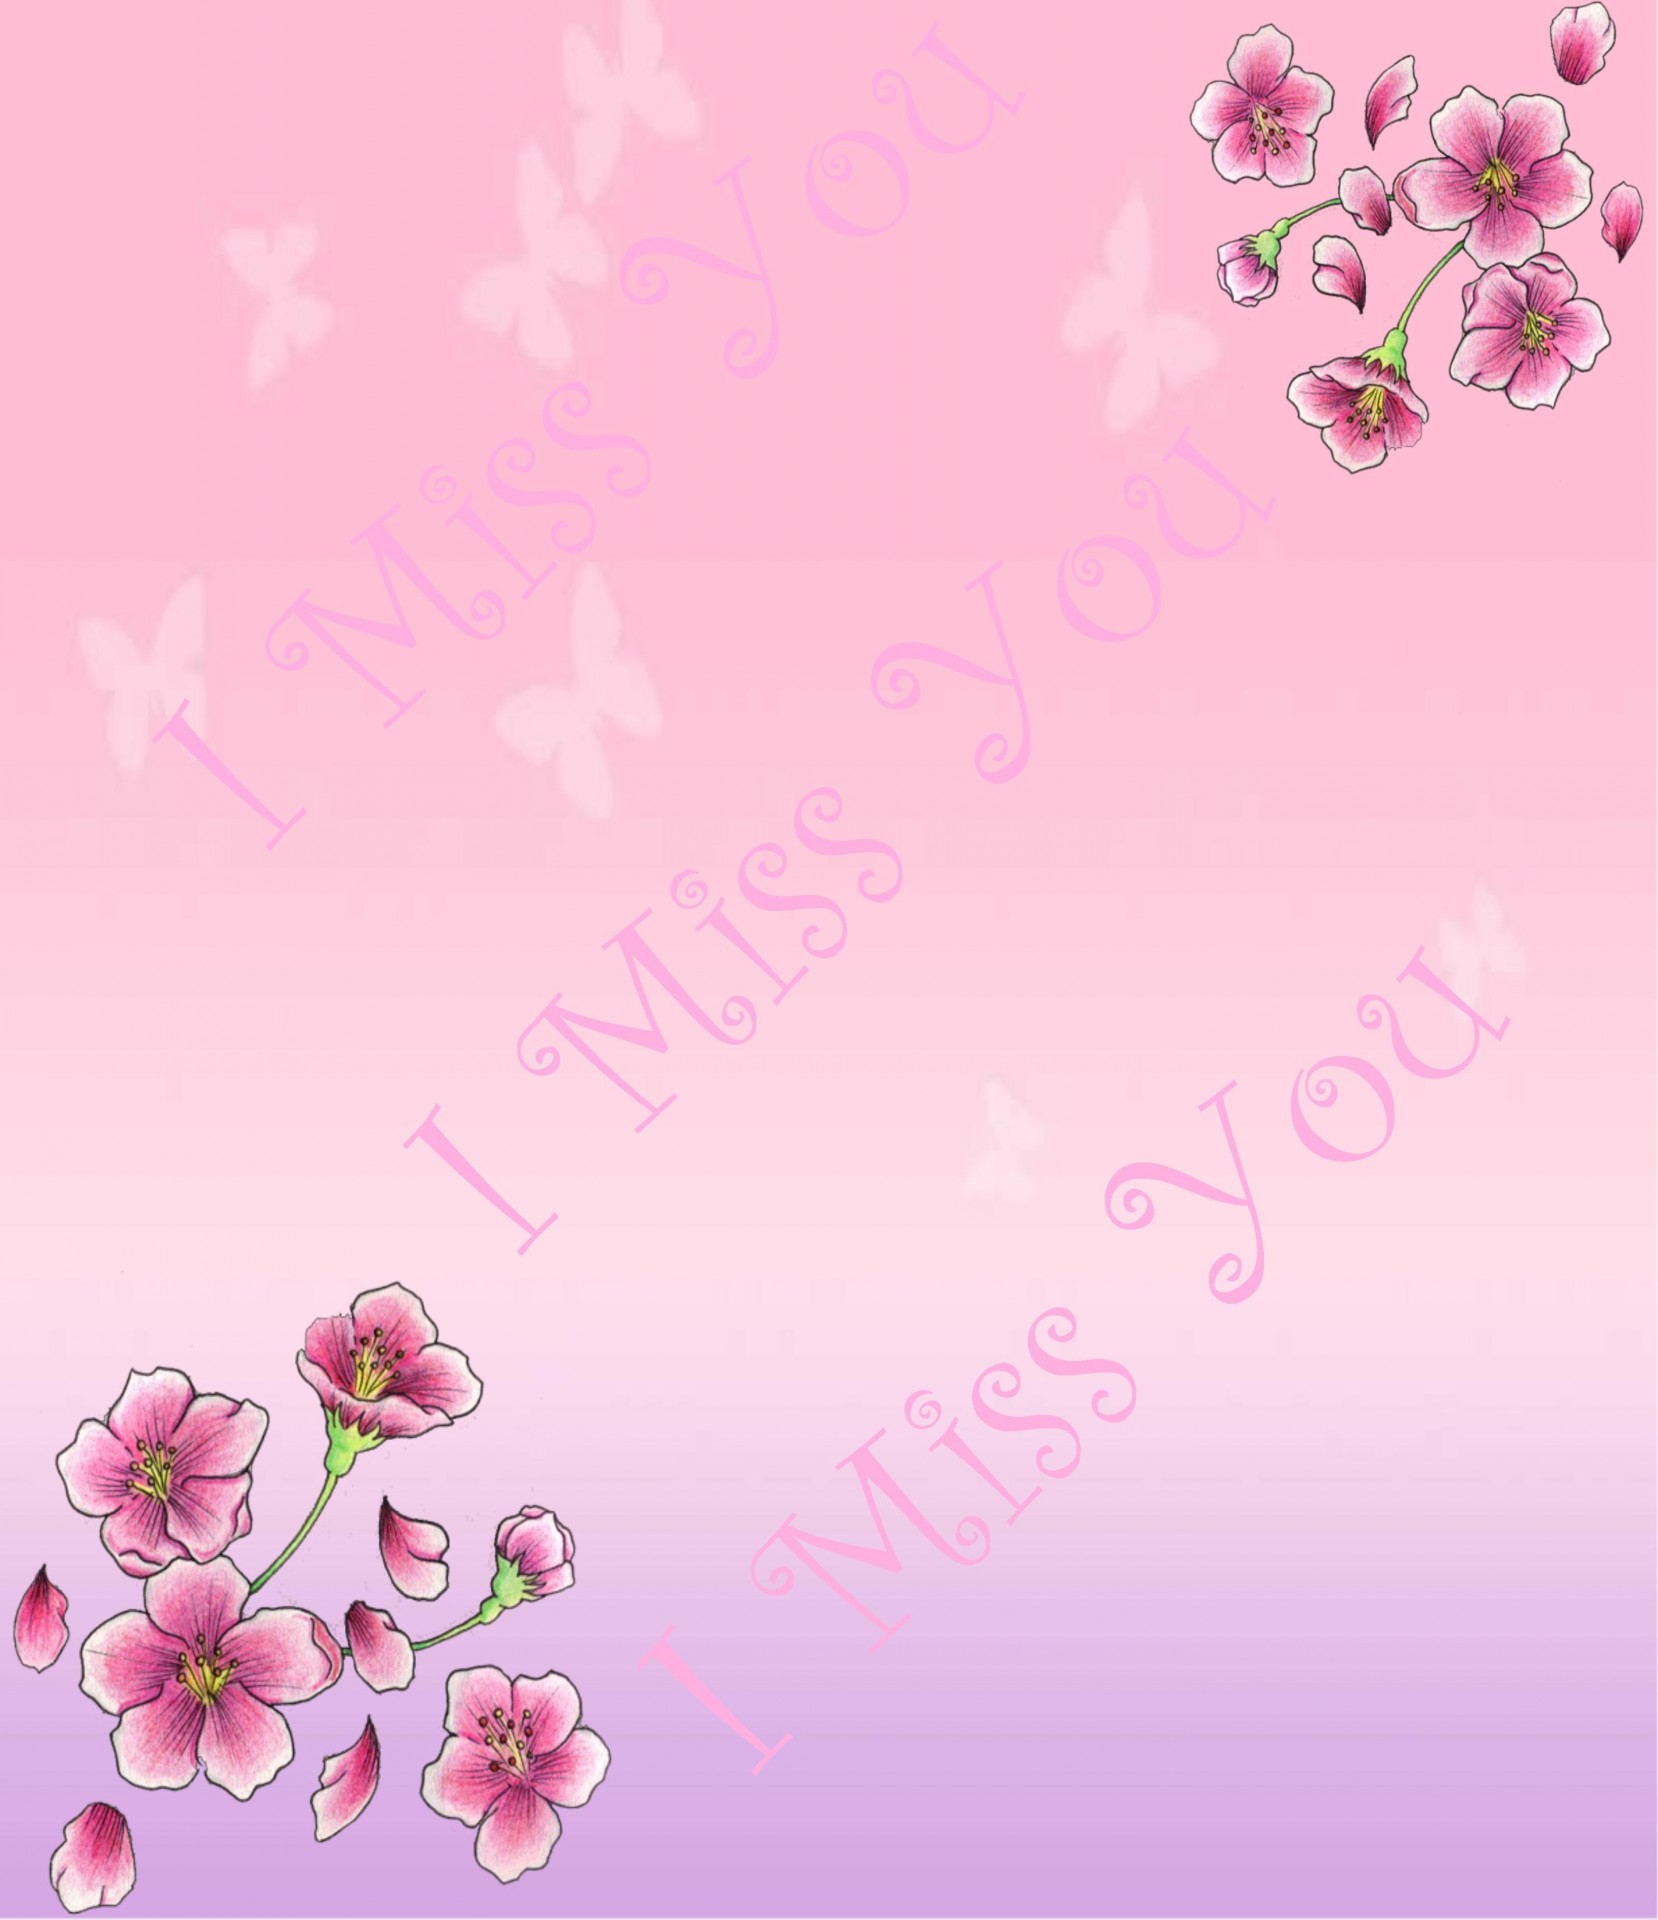 Download Free Photo Of I Miss You Background I Miss You Background Red Miss From Needpix Com